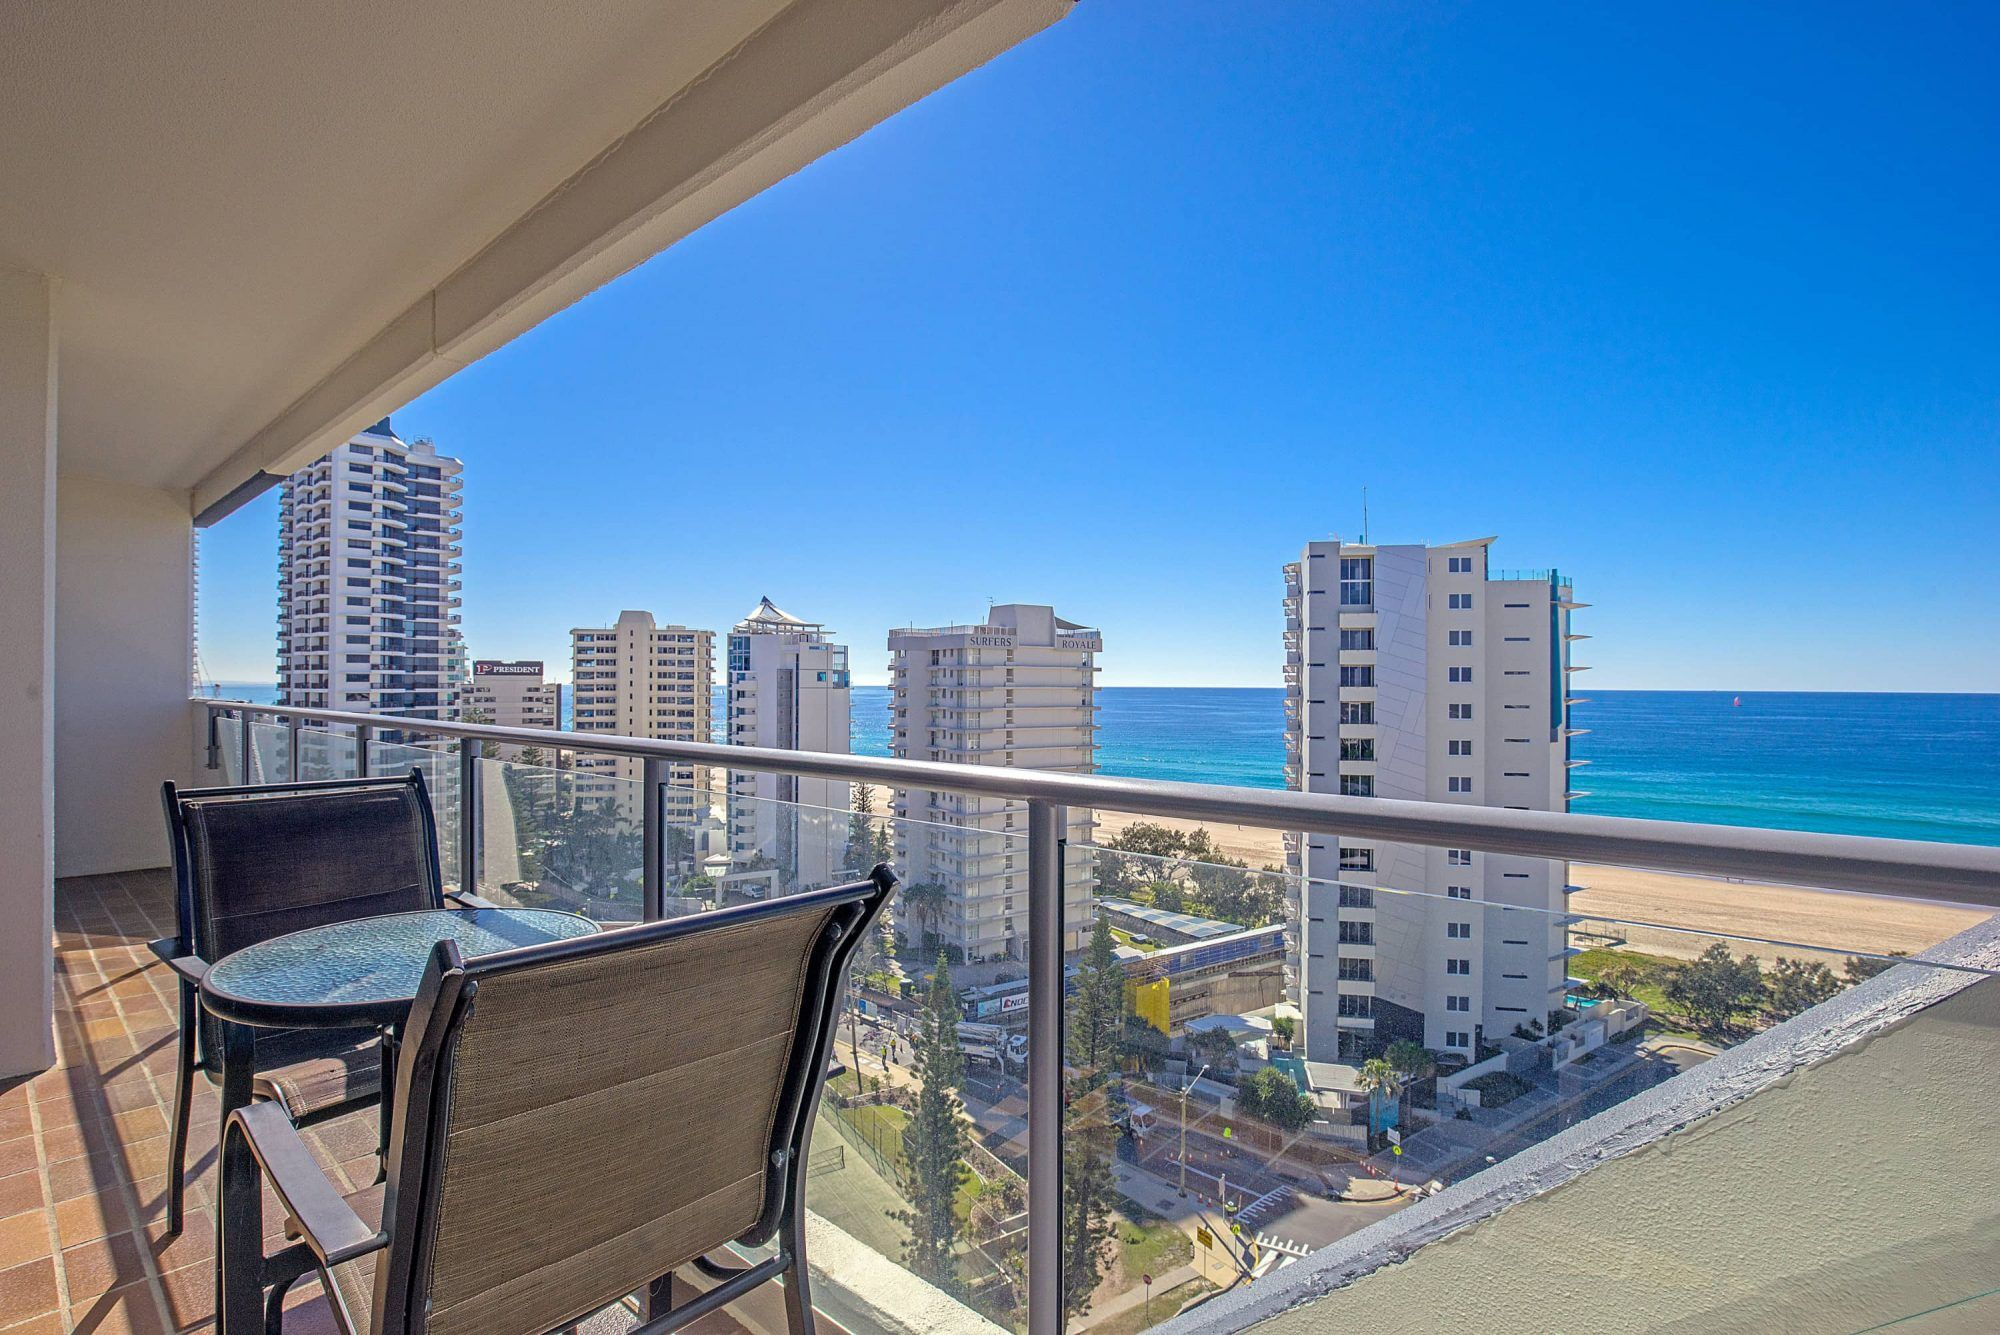 surfers paradise accommodation baronnet apartments. Black Bedroom Furniture Sets. Home Design Ideas